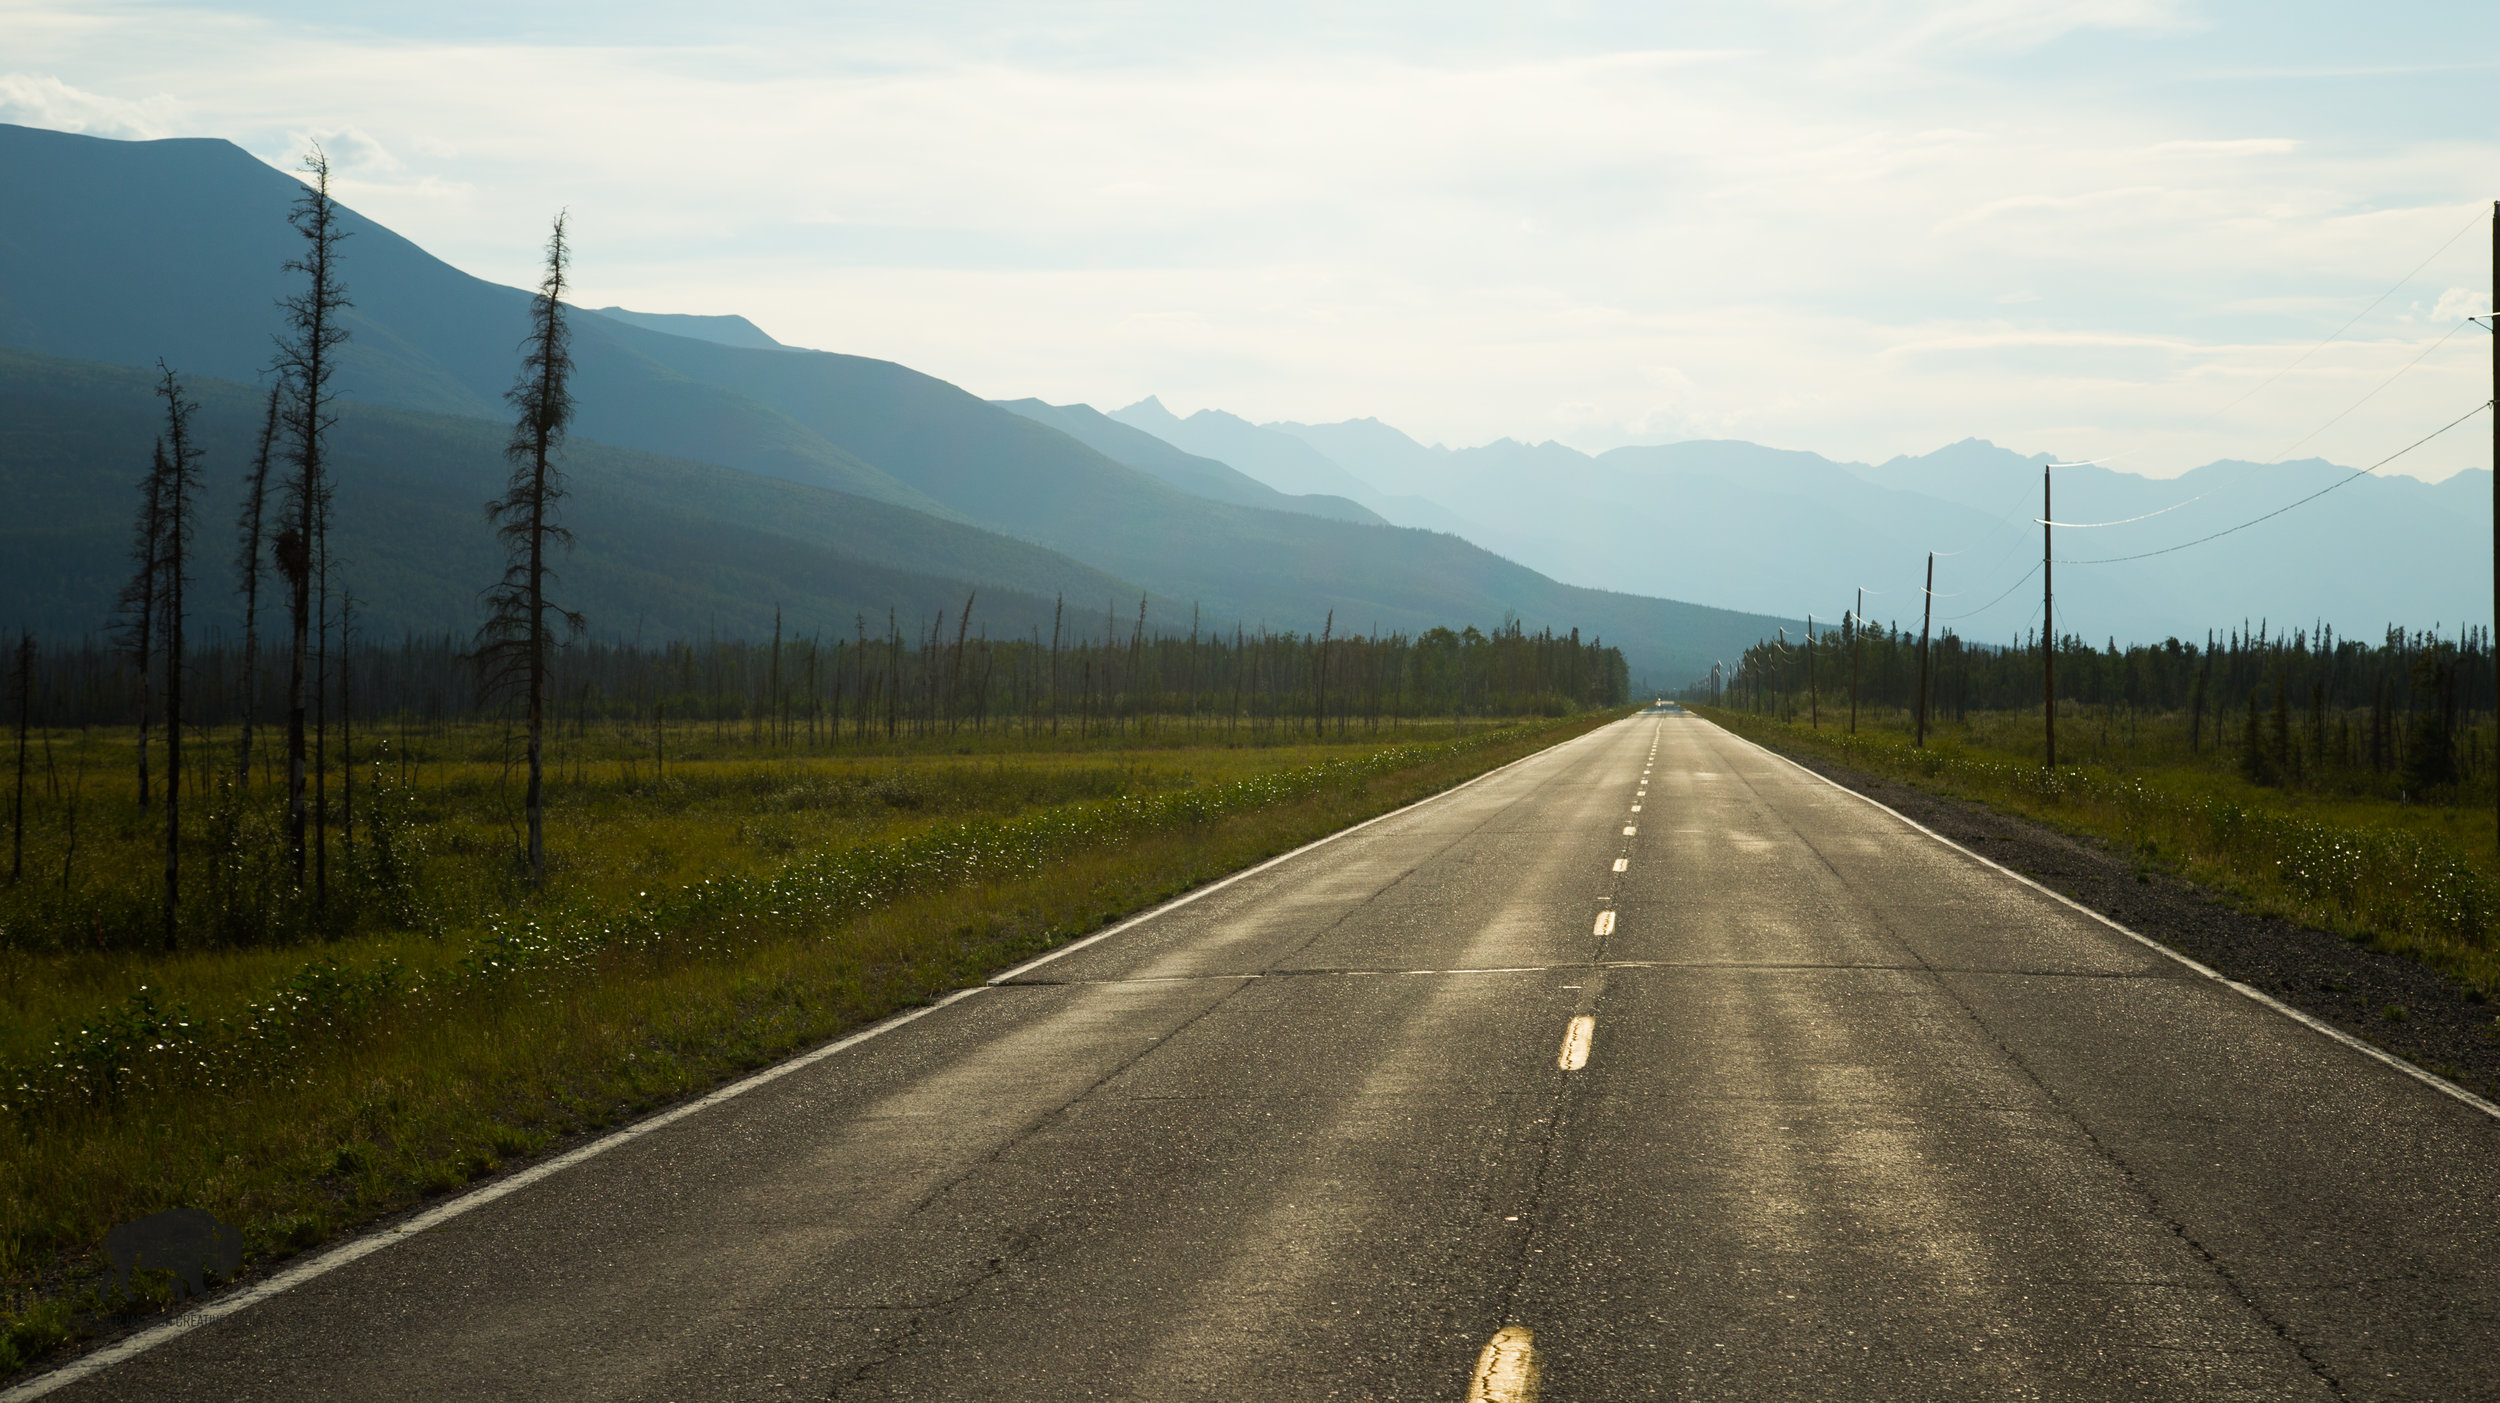 The long stretch of straight road leading from the Tok Junction towards Fairbanks.